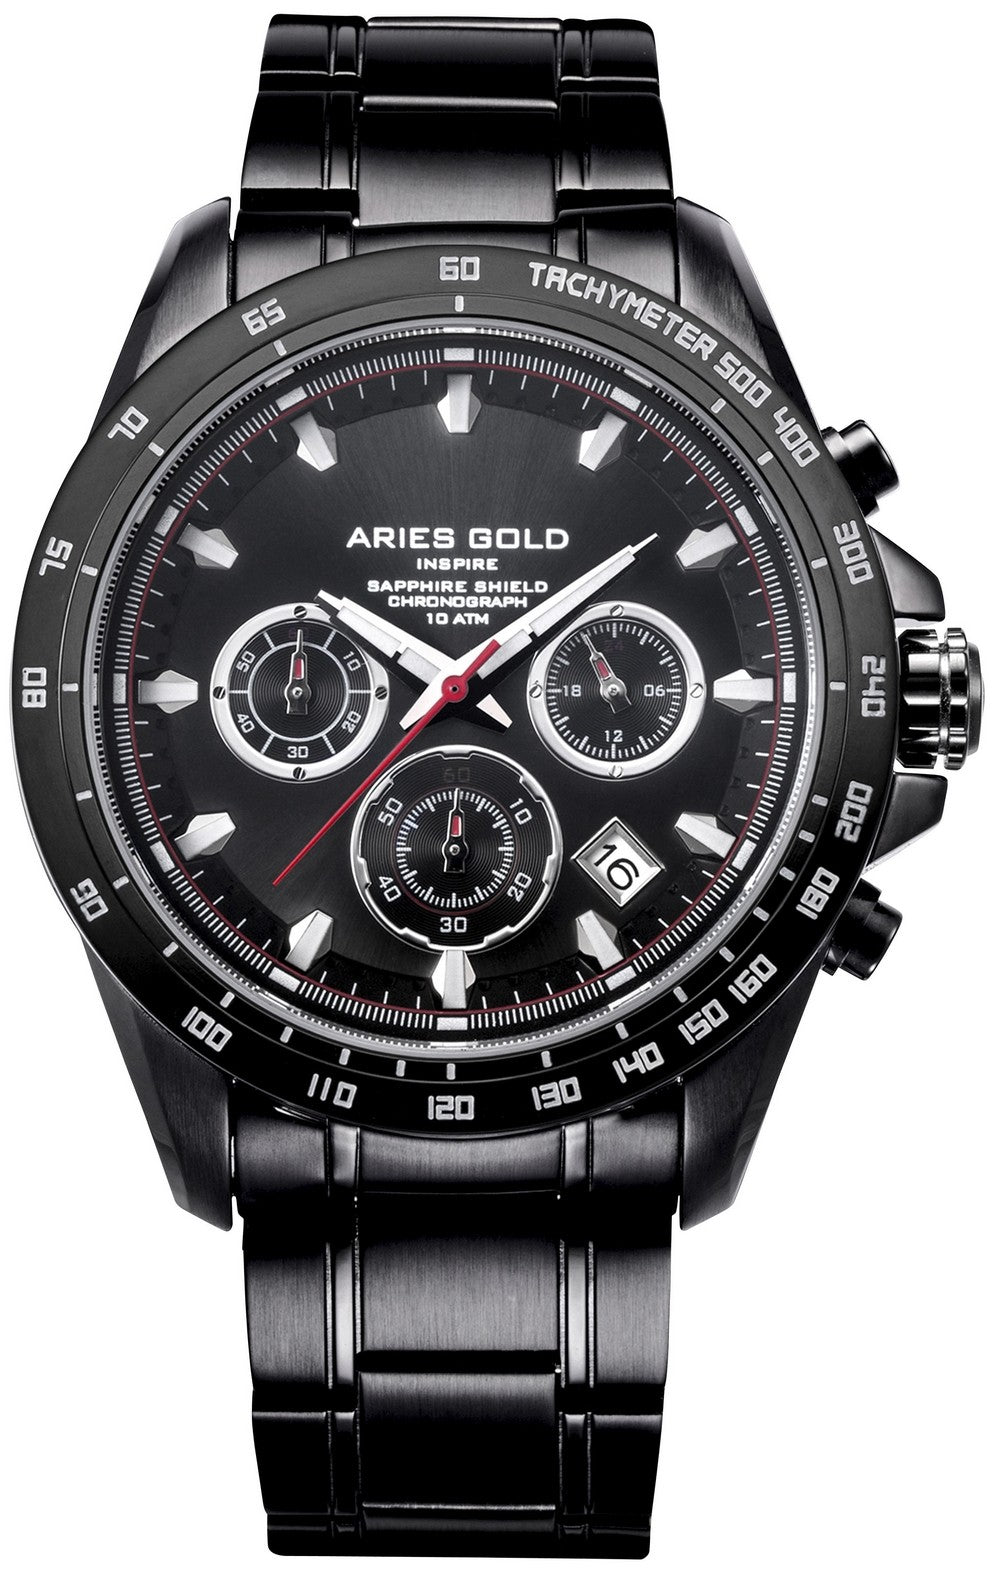 Aries Gold Inspire Drifter Chronograph Quartz G 7001 BK-BK Men's Watch, best prices, cheapest, discount, new, Cruze Watches